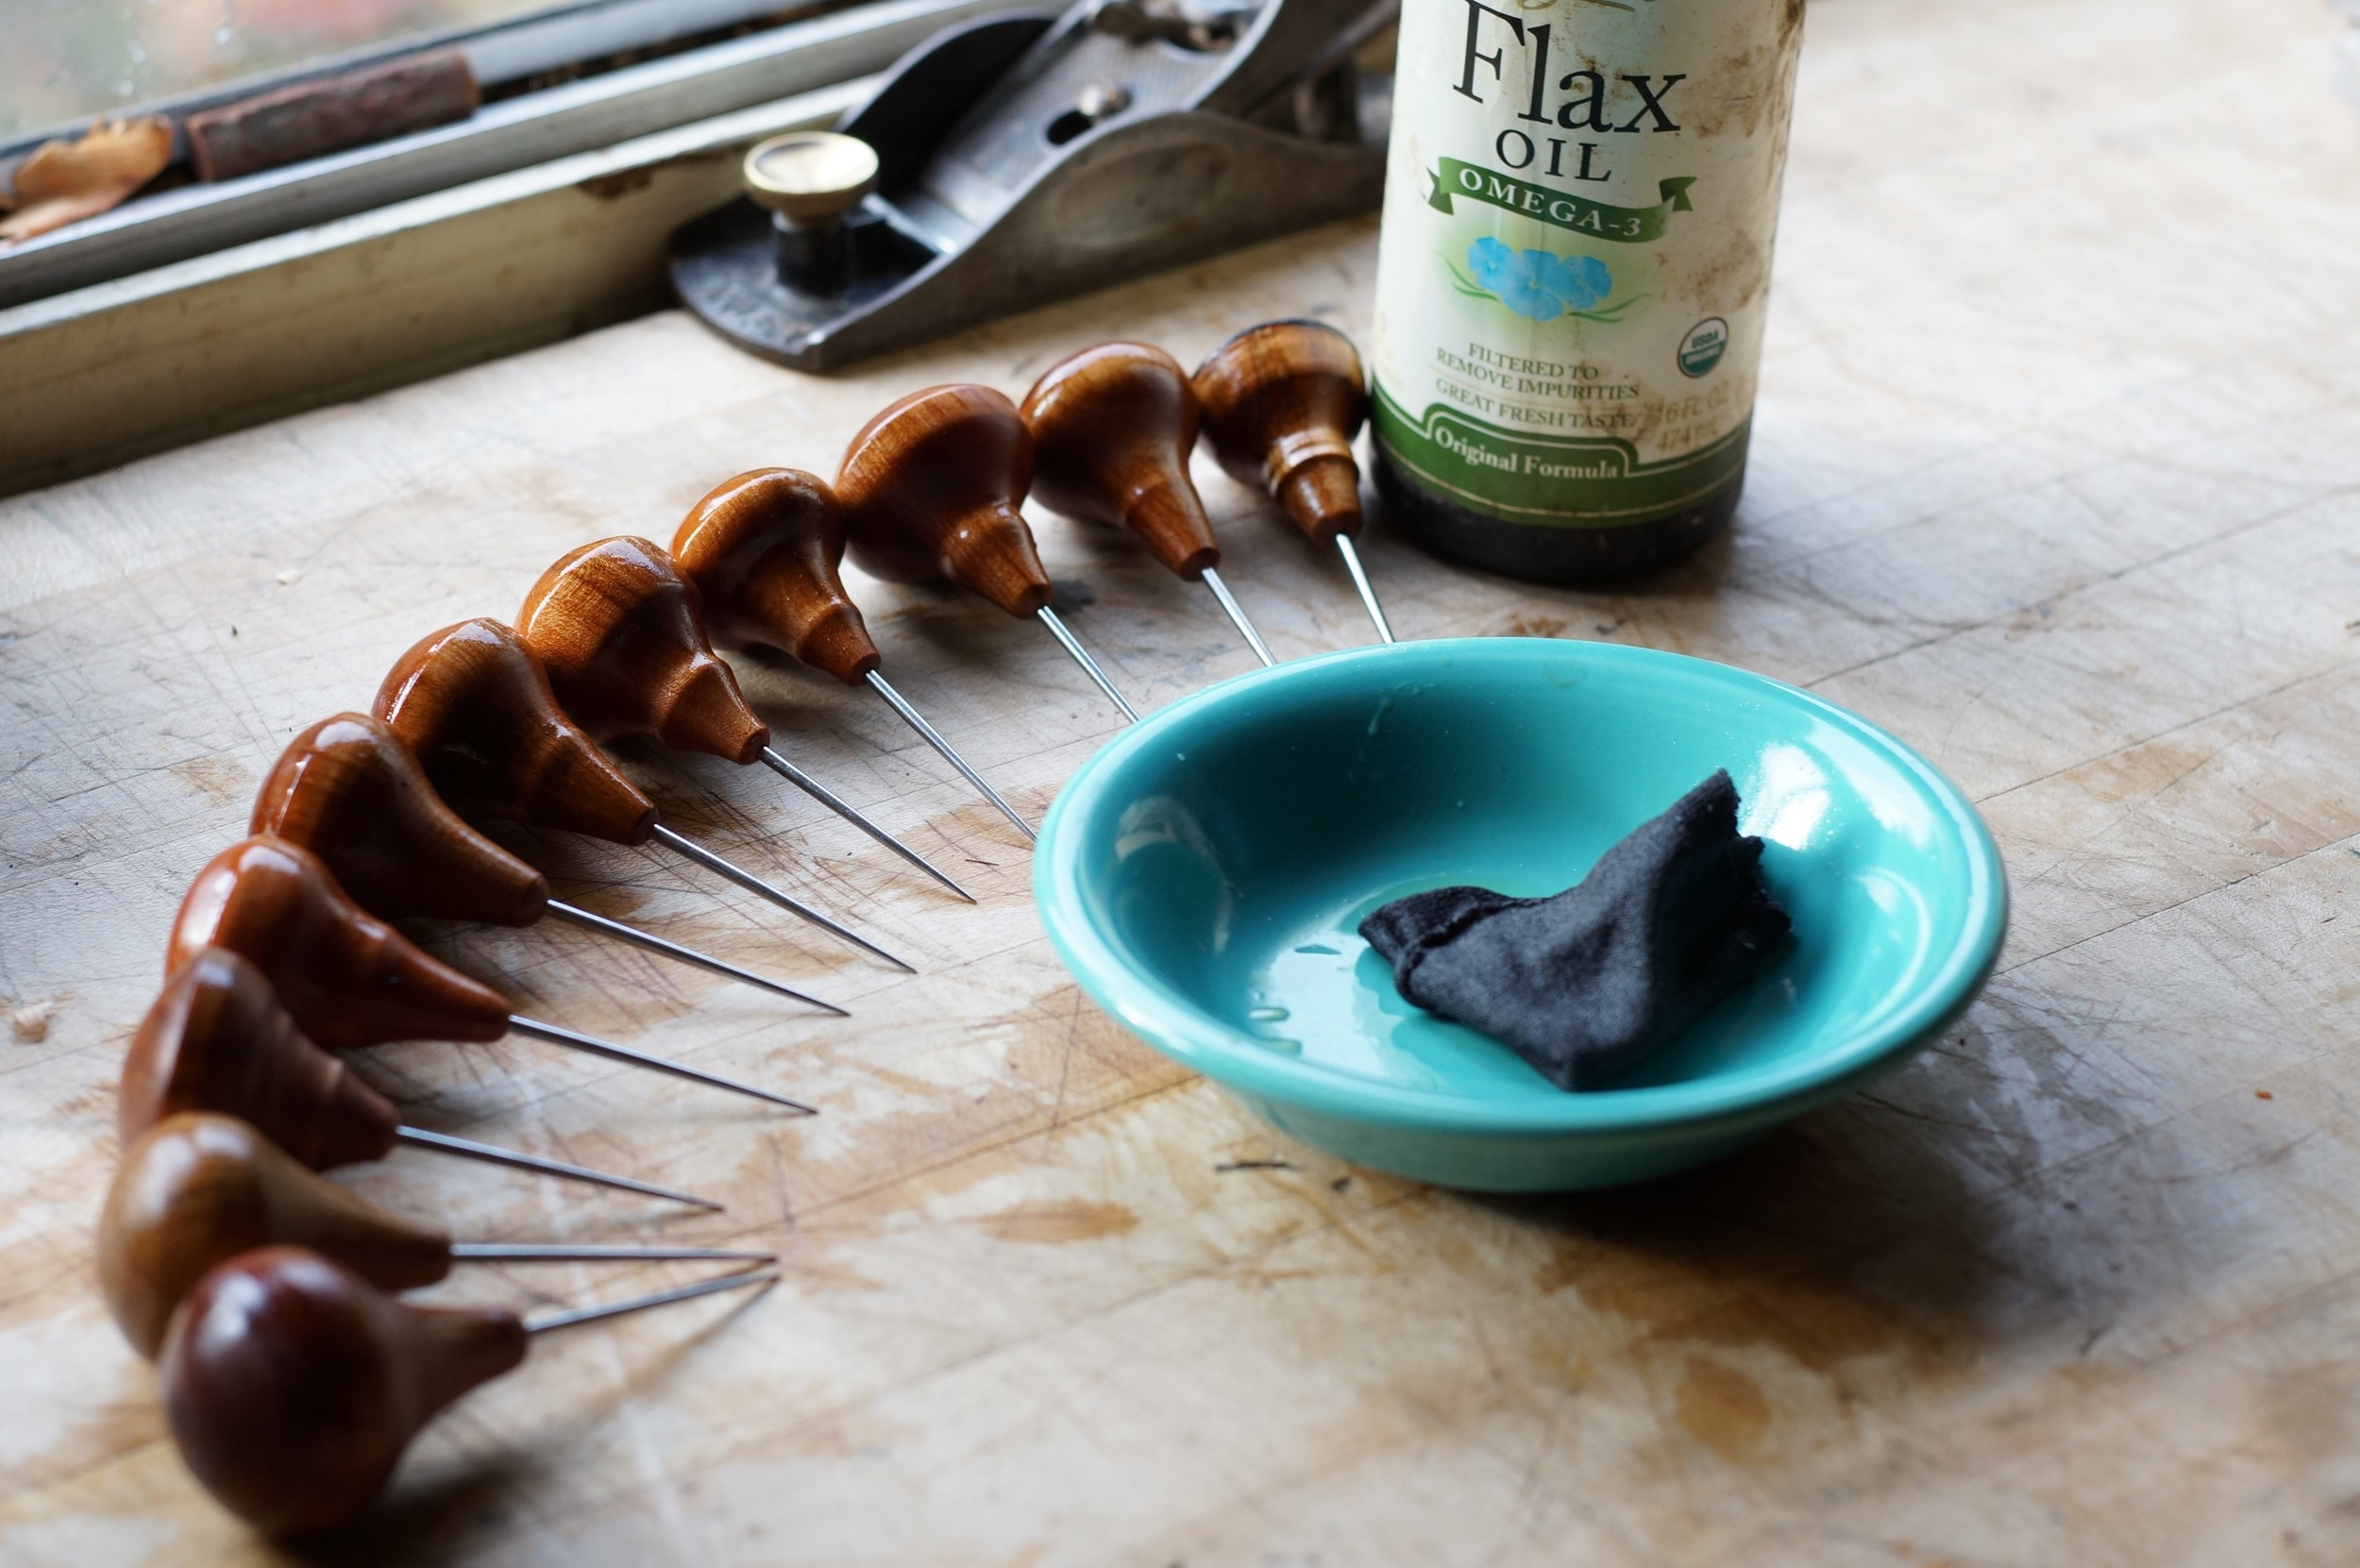 A new batch of leather working awls, getting an oil treatment.